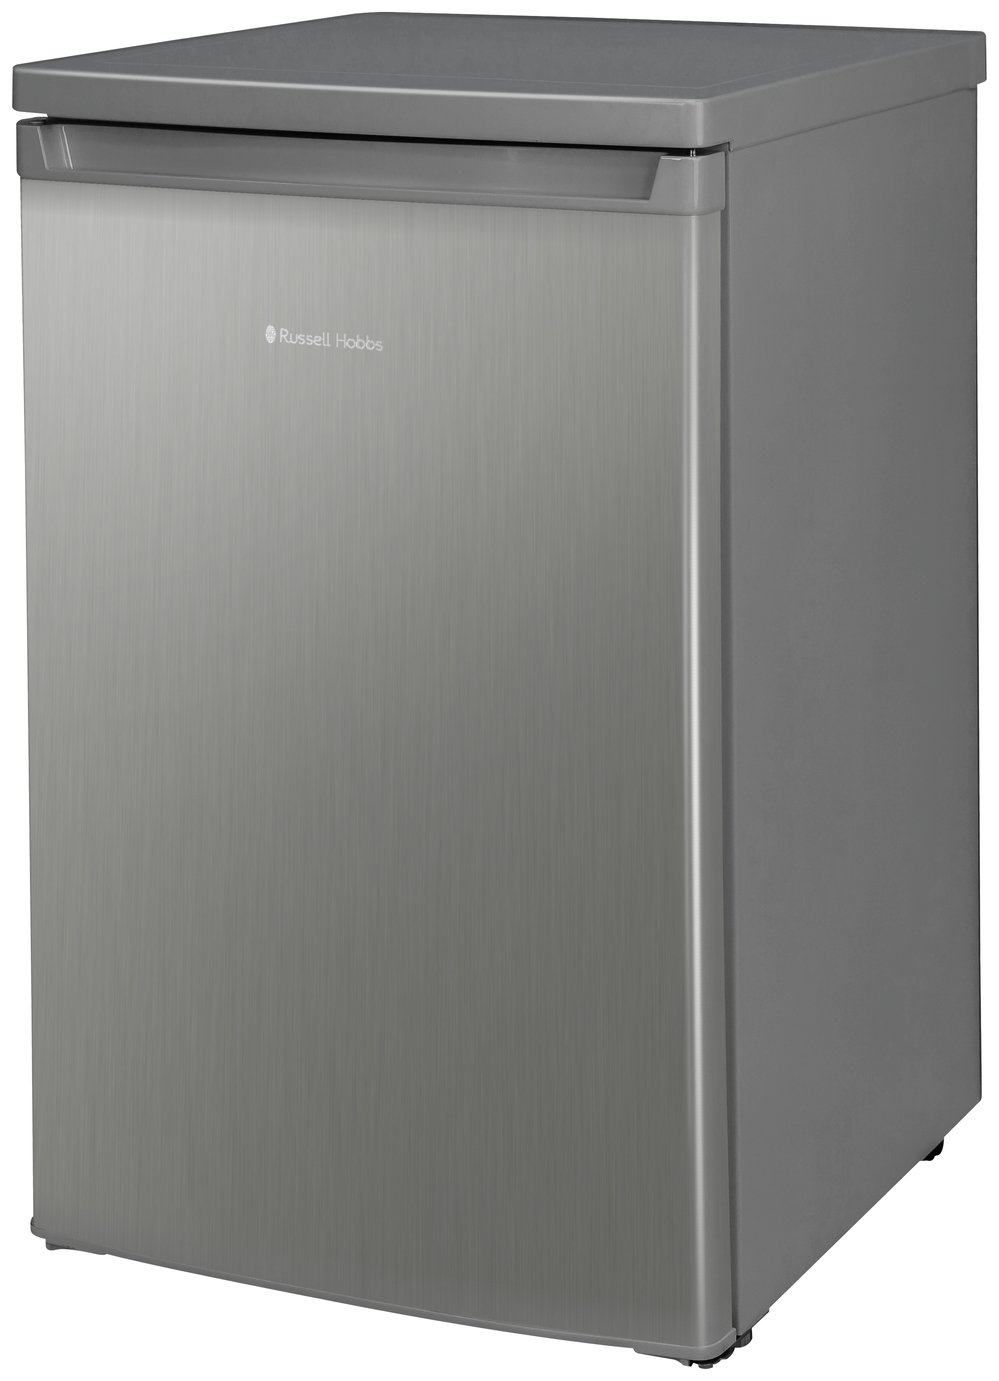 Russell Hobbs RHUCF55SS Under Counter Fridge - S/ Steel